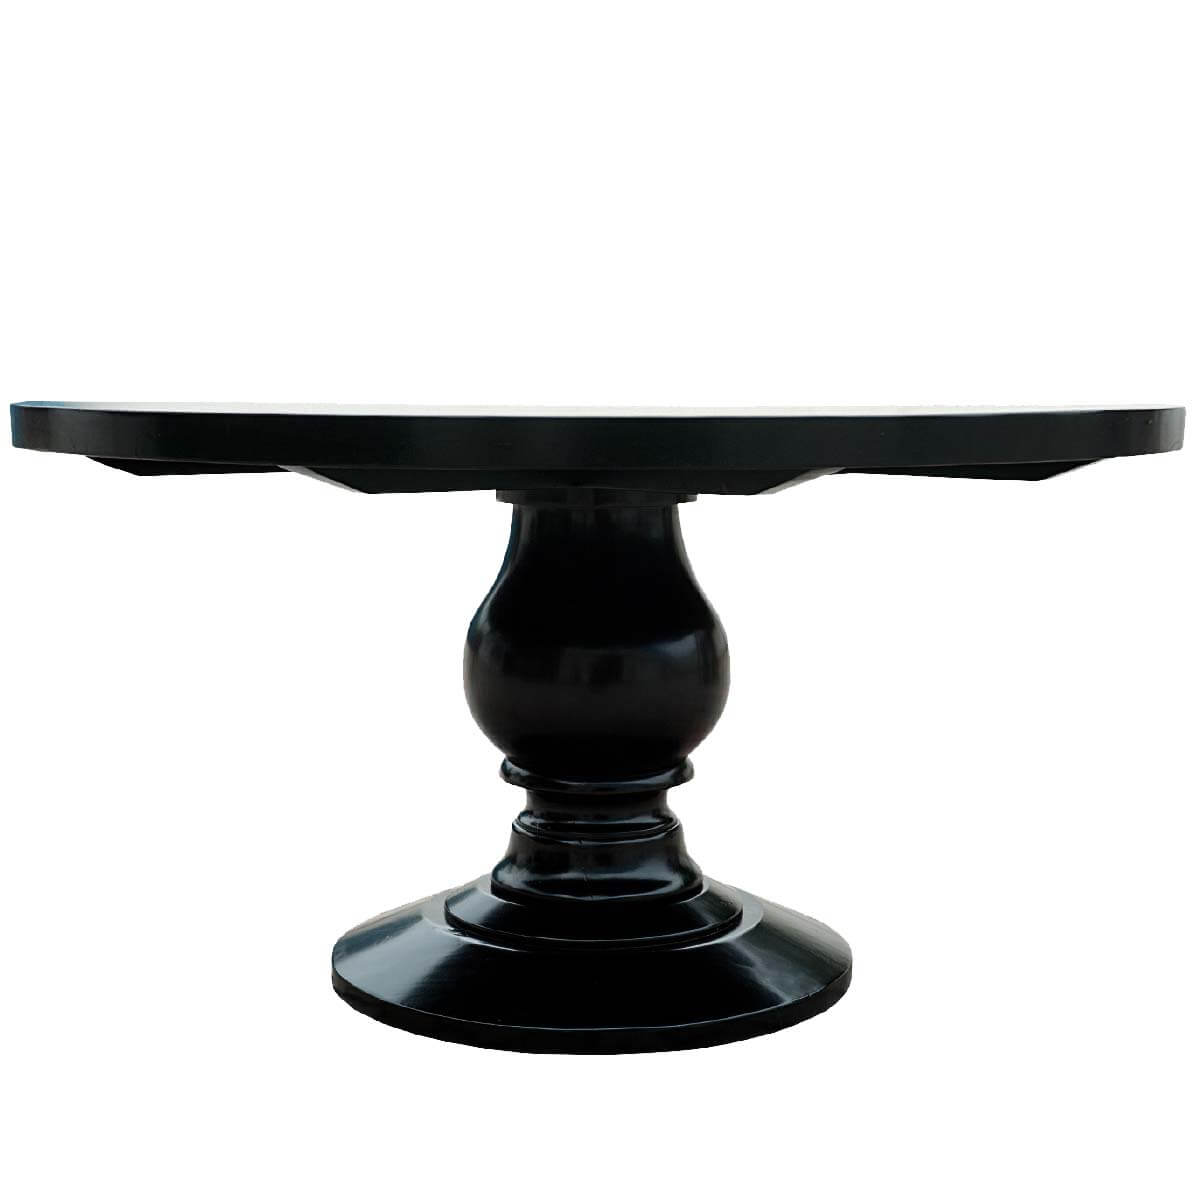 Sutton Black Baluster Pedestal Traditional Wood Round Dining Table